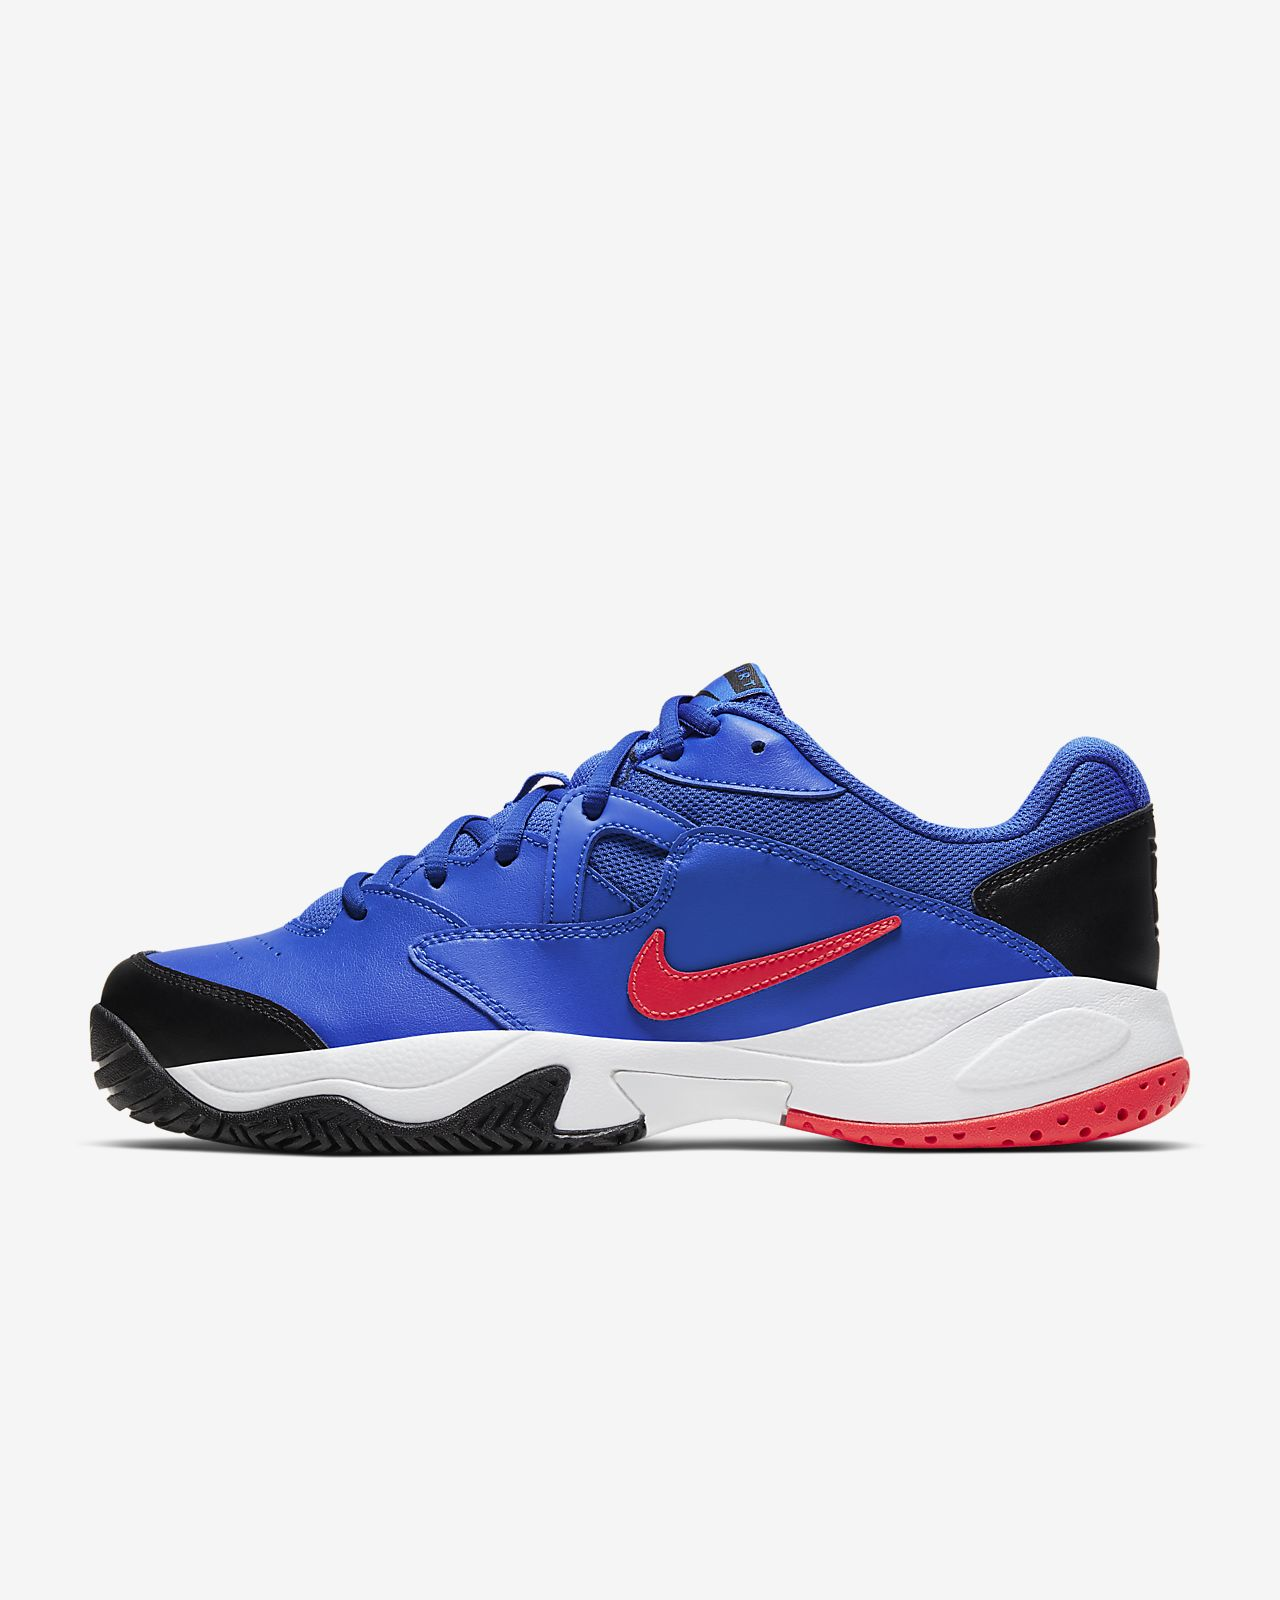 NikeCourt Lite 2 Men's Hard Court Tennis Shoe